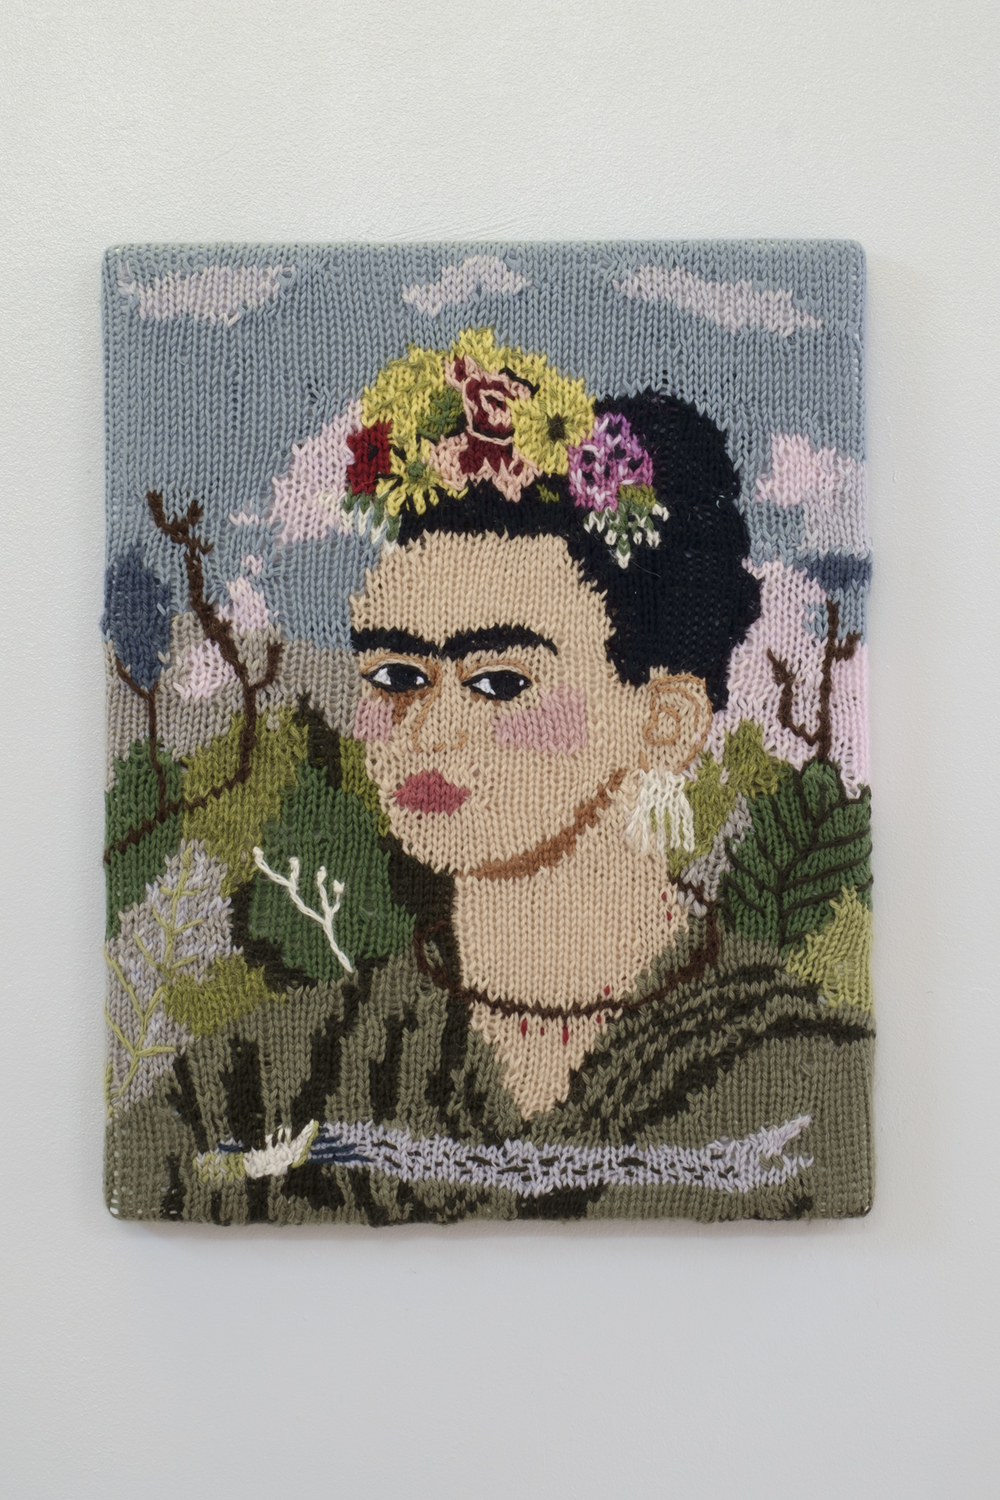 "Kate Just   Feminist Fan #14 (Frida Kahlo Self Portrait Dedicated to Dr. Eloesser: 1940)          Normal   0             false   false   false     EN-AU   X-NONE   X-NONE                                                                                                                                                                                                                                                                                                                                                                                                                                                                                                                                                                                                                                                                                                                                                                                                                                                               /* Style Definitions */  table.MsoNormalTable 	{mso-style-name:""Table Normal""; 	mso-tstyle-rowband-size:0; 	mso-tstyle-colband-size:0; 	mso-style-noshow:yes; 	mso-style-priority:99; 	mso-style-parent:""""; 	mso-padding-alt:0cm 5.4pt 0cm 5.4pt; 	mso-para-margin-top:0cm; 	mso-para-margin-right:0cm; 	mso-para-margin-bottom:10.0pt; 	mso-para-margin-left:0cm; 	line-height:115%; 	mso-pagination:widow-orphan; 	font-size:11.0pt; 	font-family:""Calibri"",sans-serif; 	mso-ascii-font-family:Calibri; 	mso-ascii-theme-font:minor-latin; 	mso-hansi-font-family:Calibri; 	mso-hansi-theme-font:minor-latin; 	mso-fareast-language:EN-US;}"